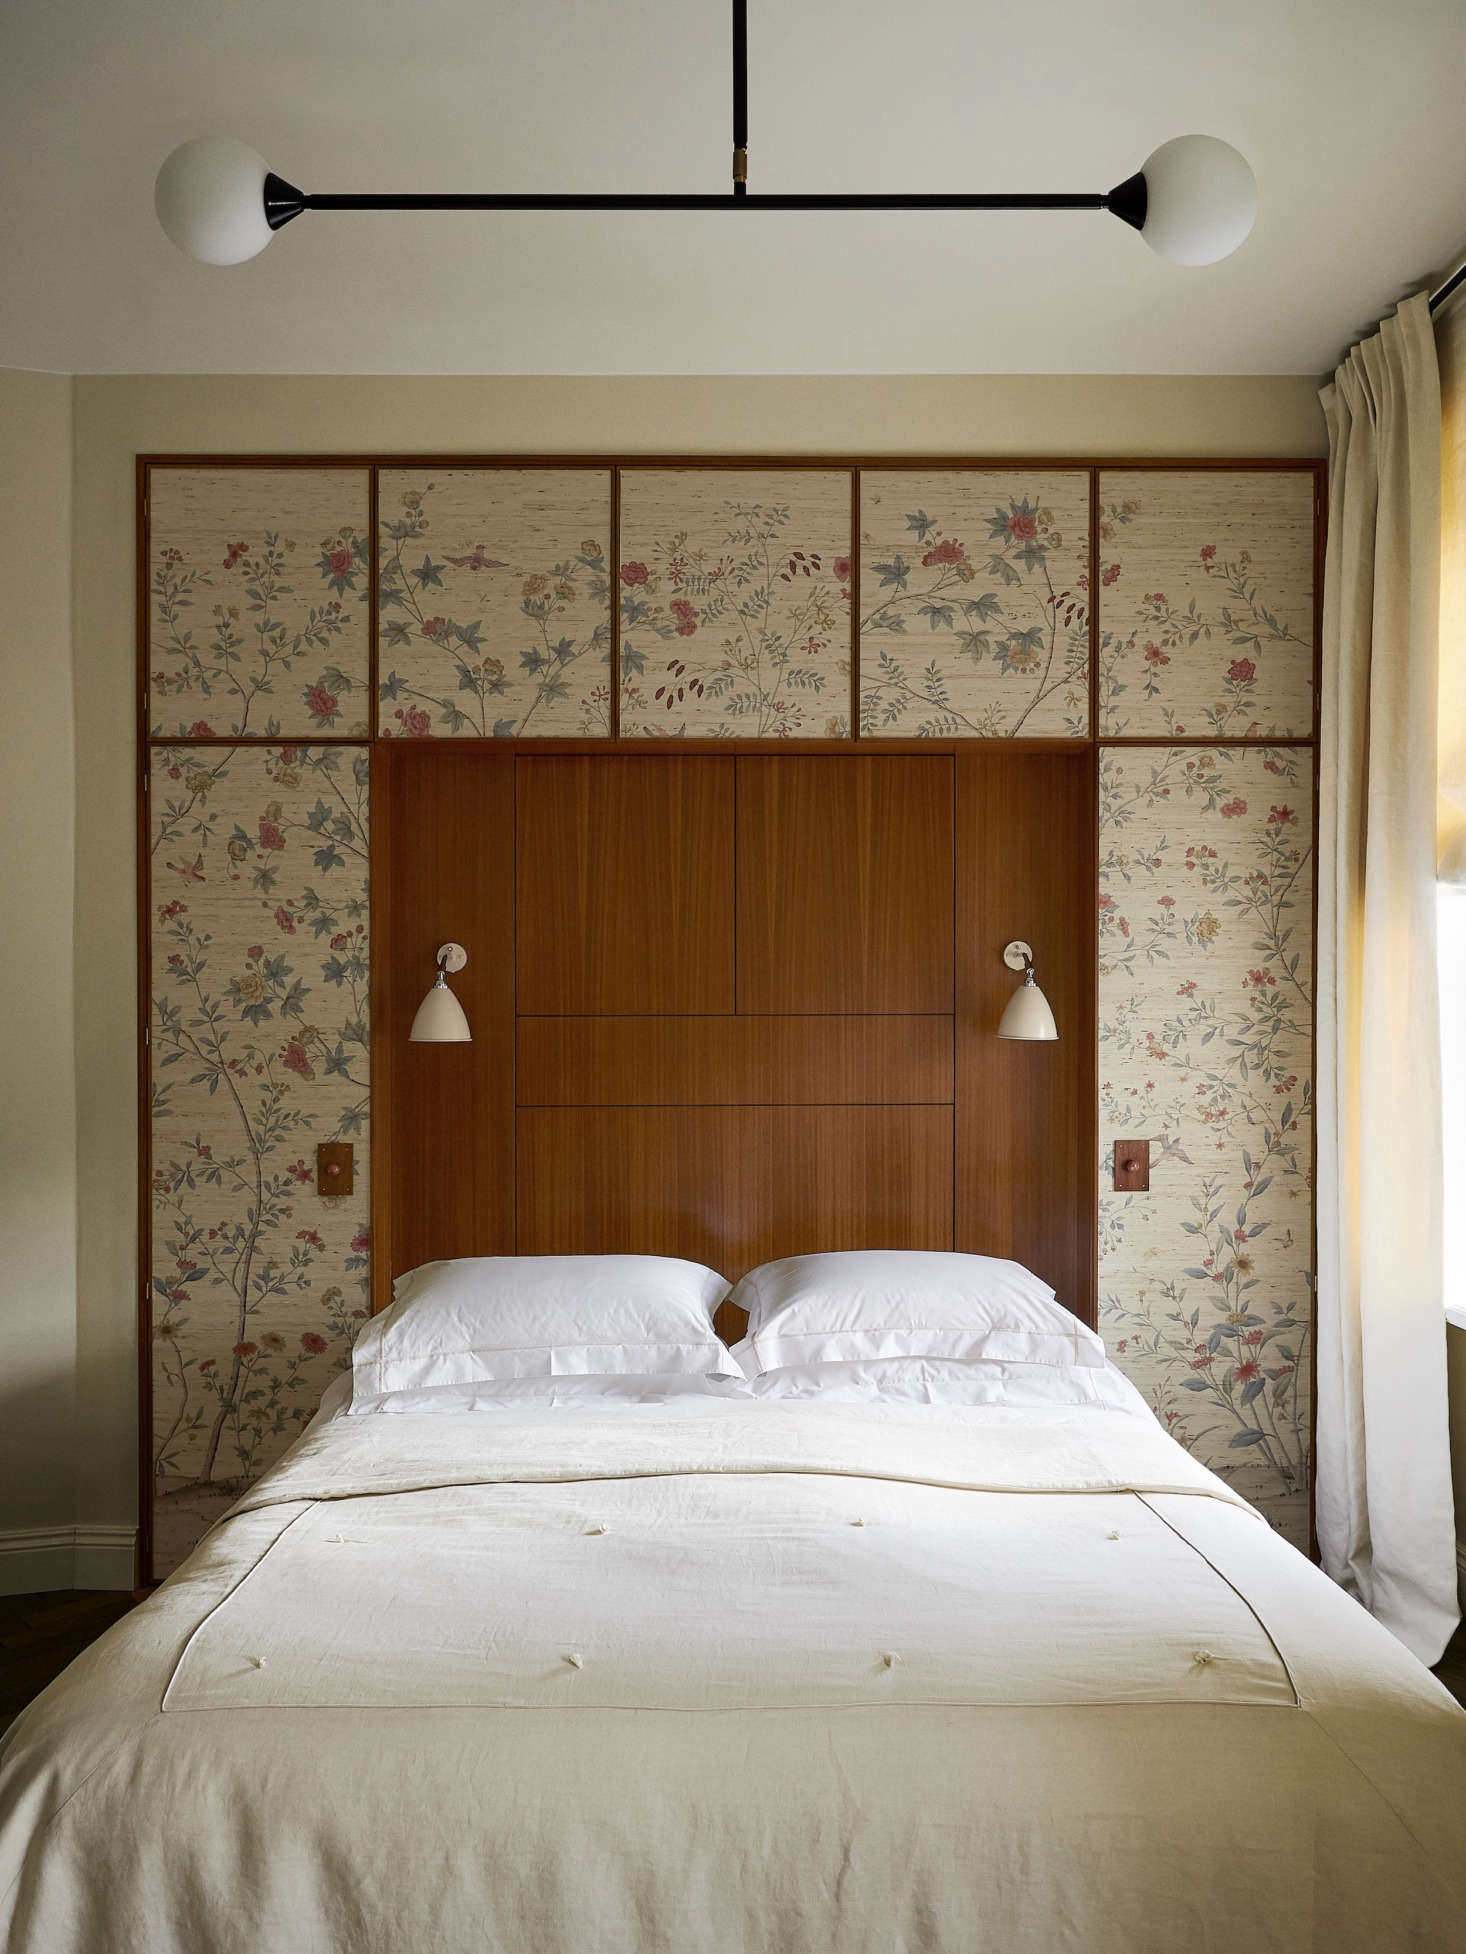 A quirk of the apartment is that nearly every room has a diagonal wall. In the bedroom, Chrapka straightened the room with the help of a built-in headboard and cabinet. The Bestlite sconces are by Gubi.